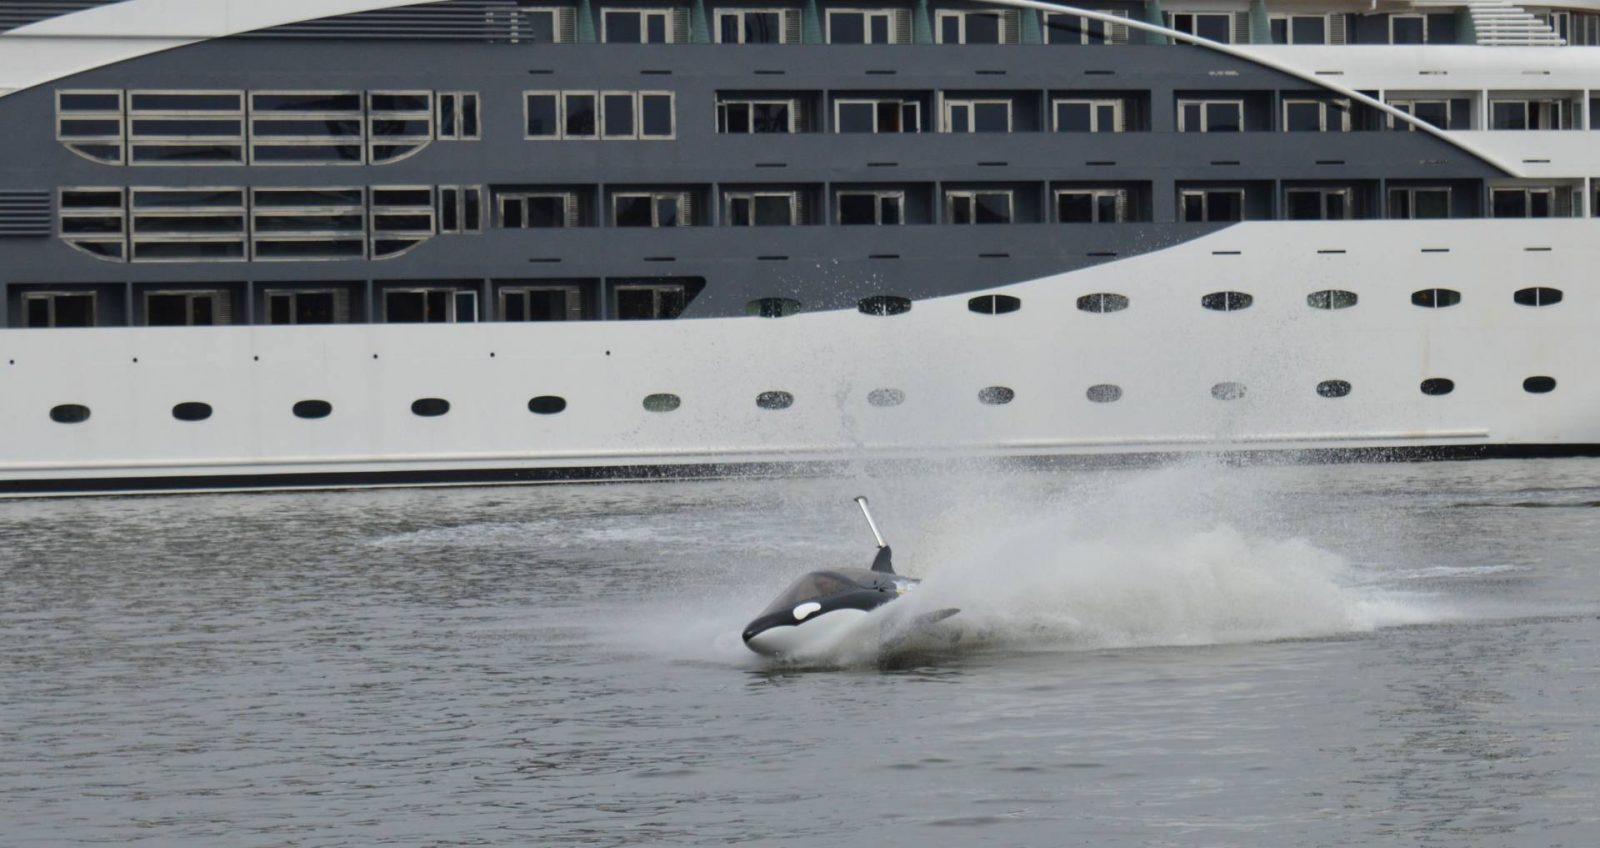 Trying Out the Seabreacher at London's Royal Victoria Docks, Seabreacher in the water